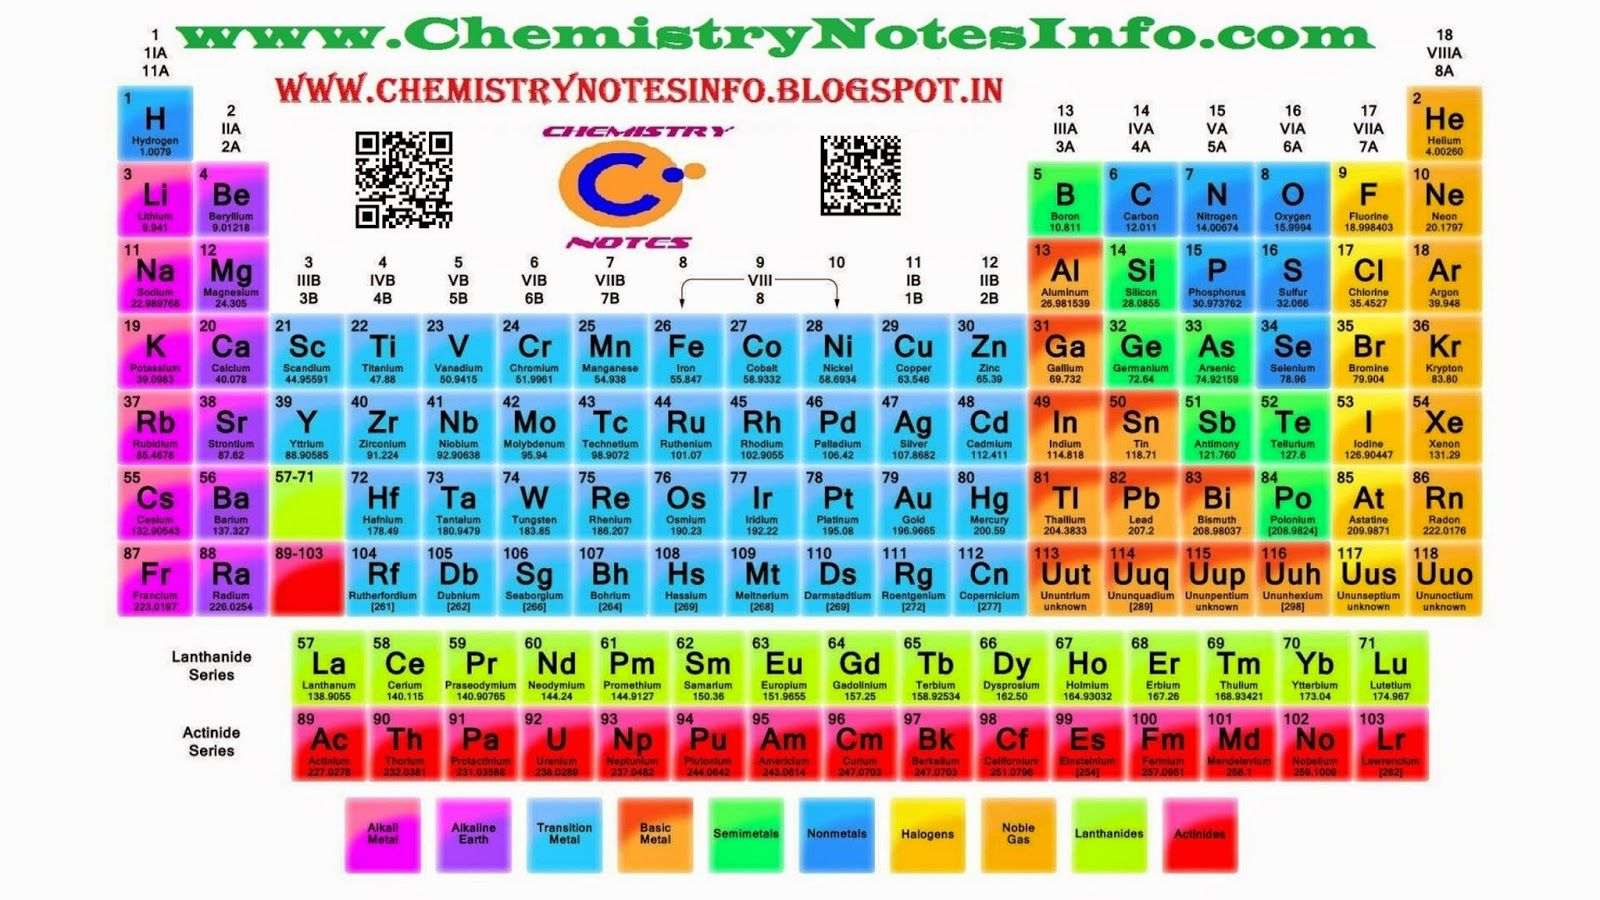 Periodic Table Of Elements By Chemistry Notes Info At